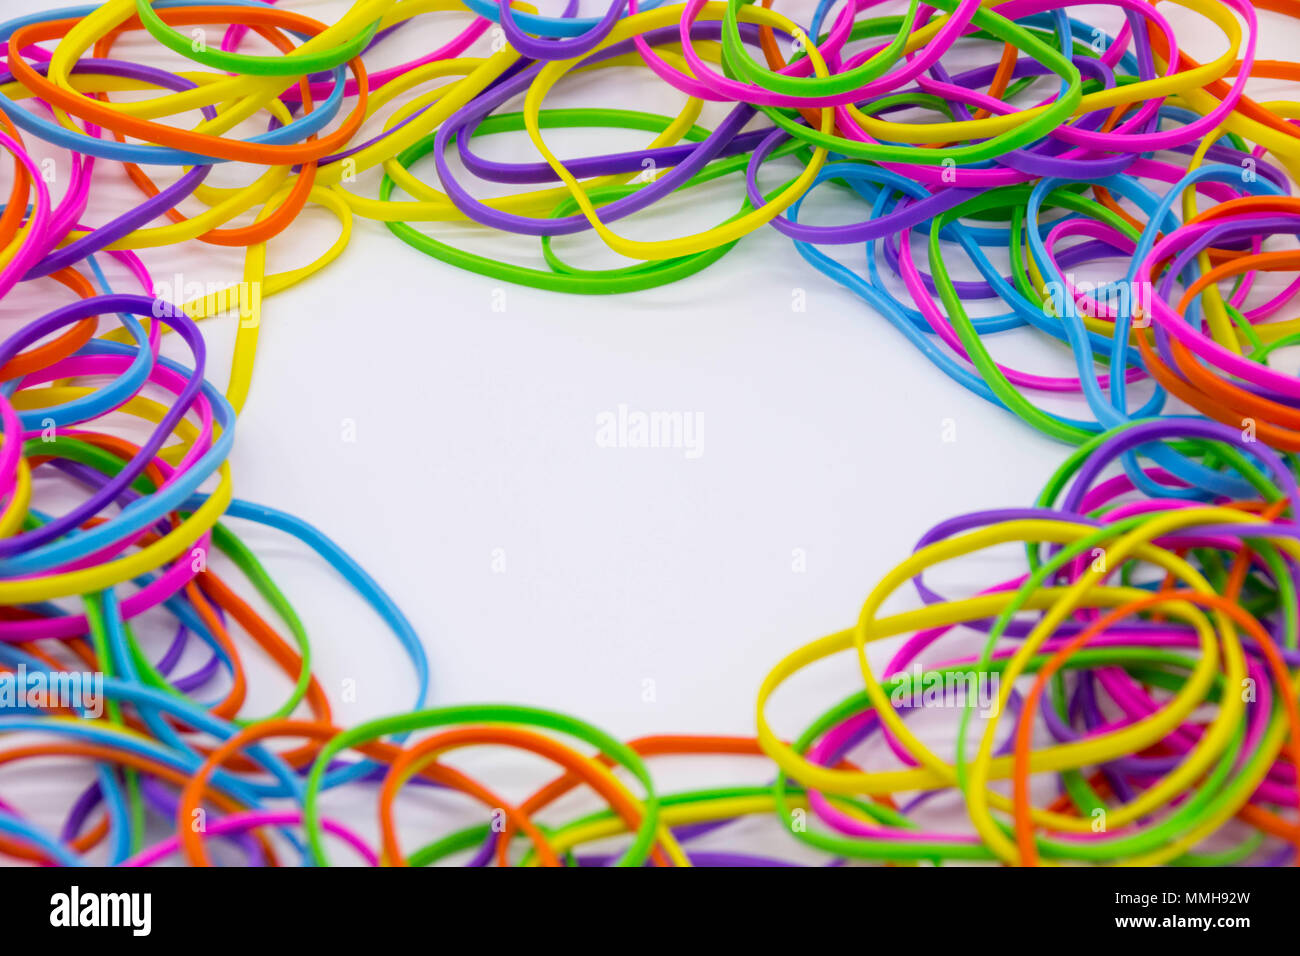 Pile Of Elastic Bands Stock Photos & Pile Of Elastic Bands Stock ...